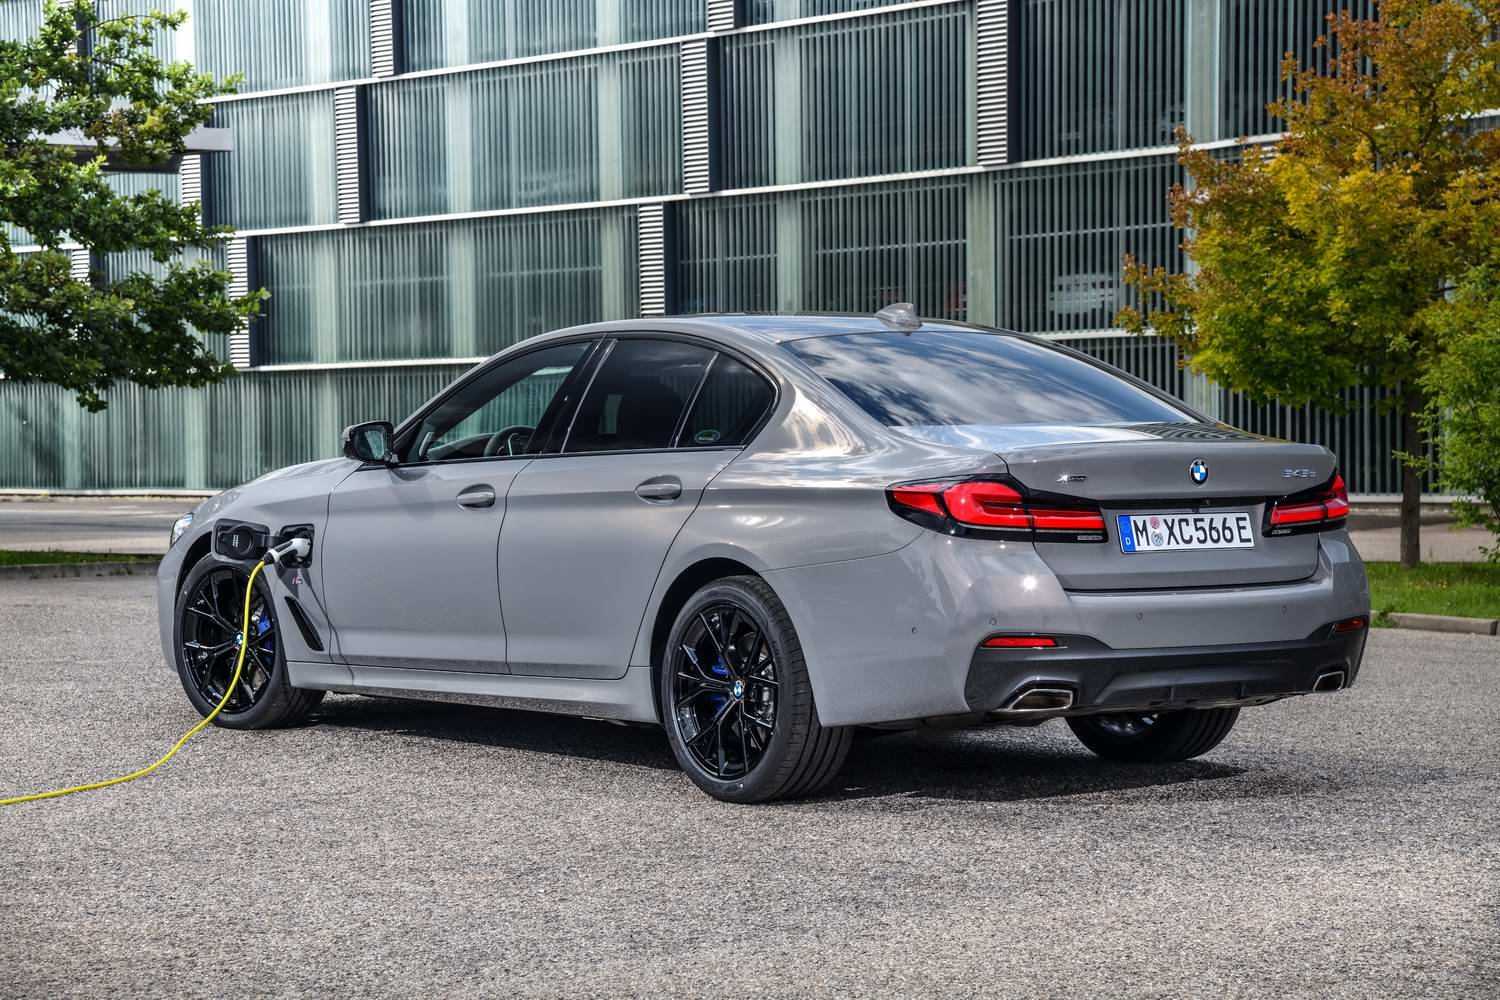 bmw 545e plug-in hybrid (2021) | reviews | complete car